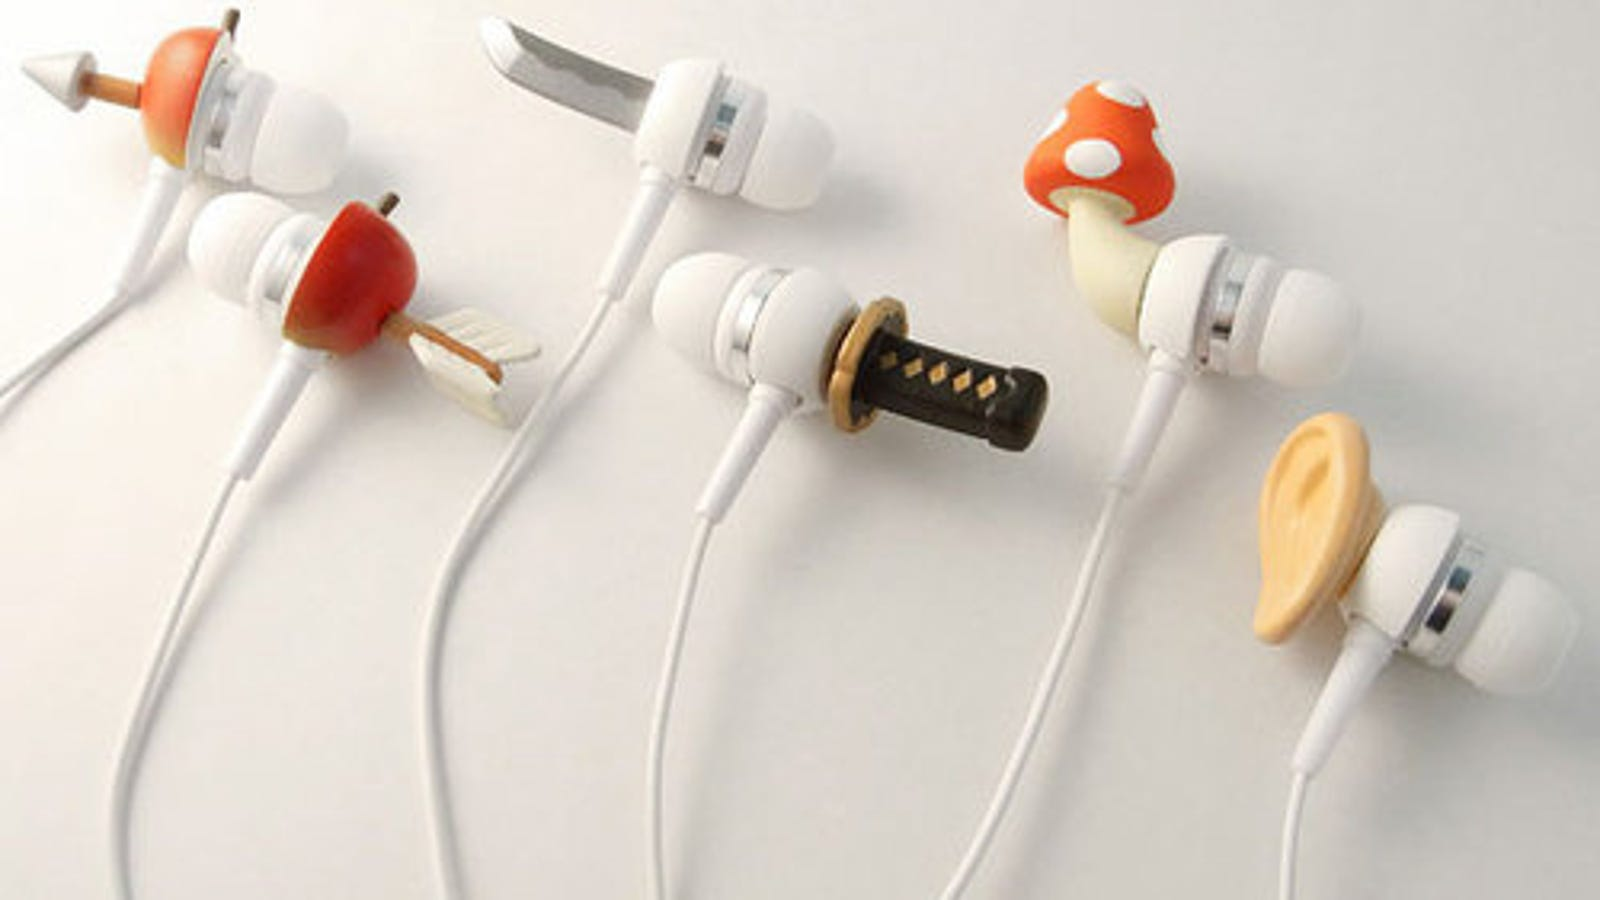 beats wireless headphones buds - Katana Earbuds Show the World How I Feel When I Listen to LFO